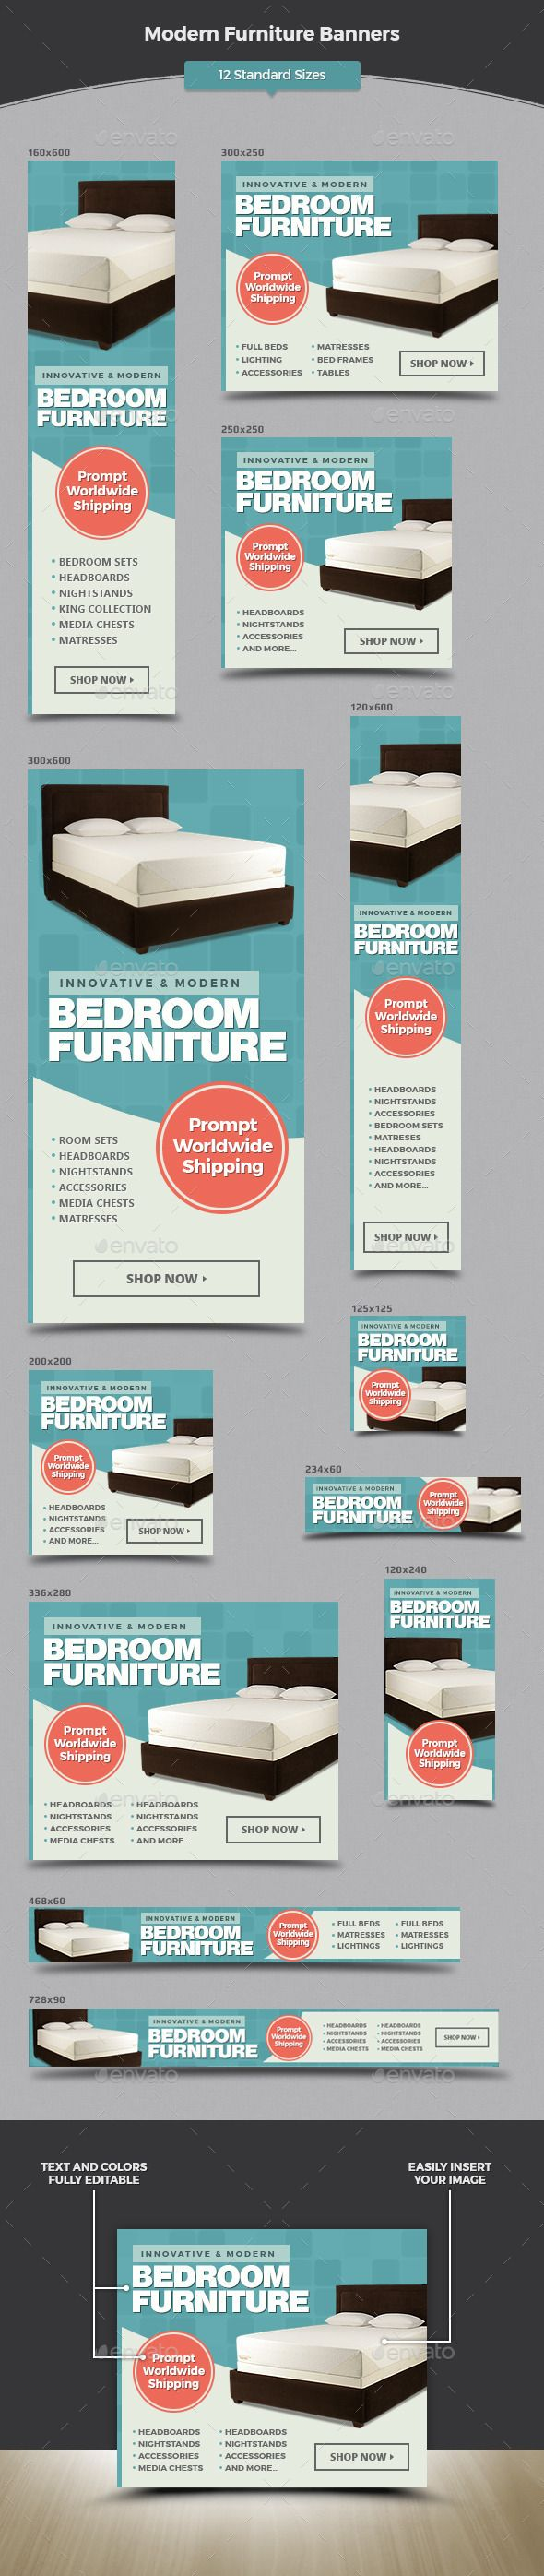 Modern Furniture Banners - Banners & Ads Web Elements